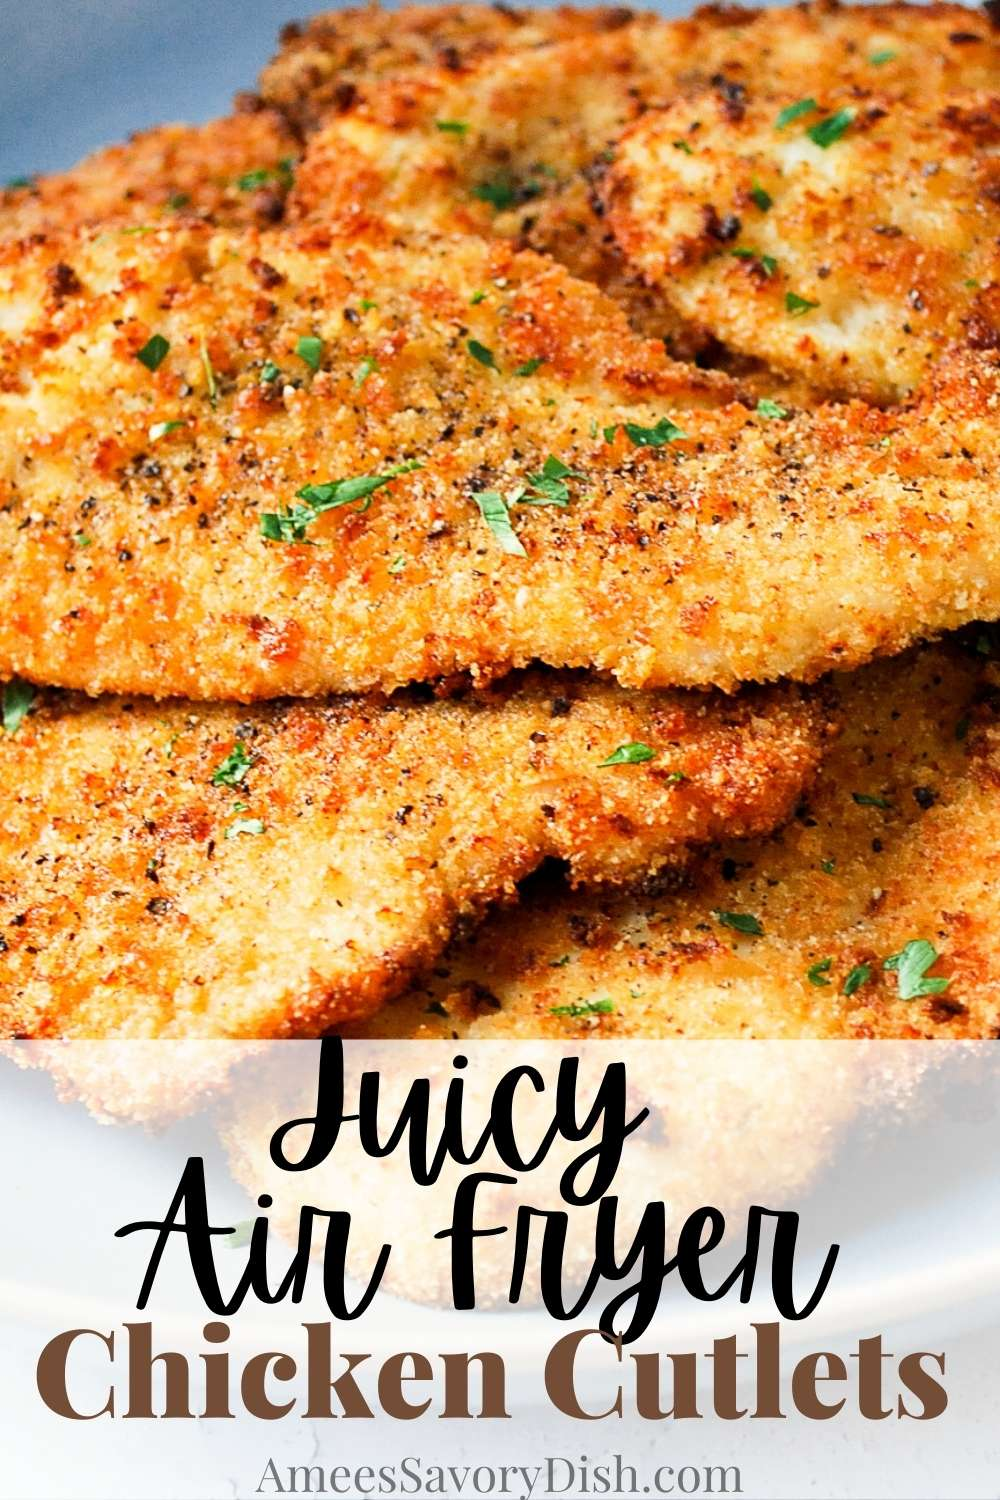 These Air Fryer Chicken Cutlets are brined, breaded, and baked in an air fryer until crisp and juicy in under 20 minutes! Learn how to make these air fryer breaded cutlets to add to salads and sandwiches or serve as the main course. via @Ameessavorydish